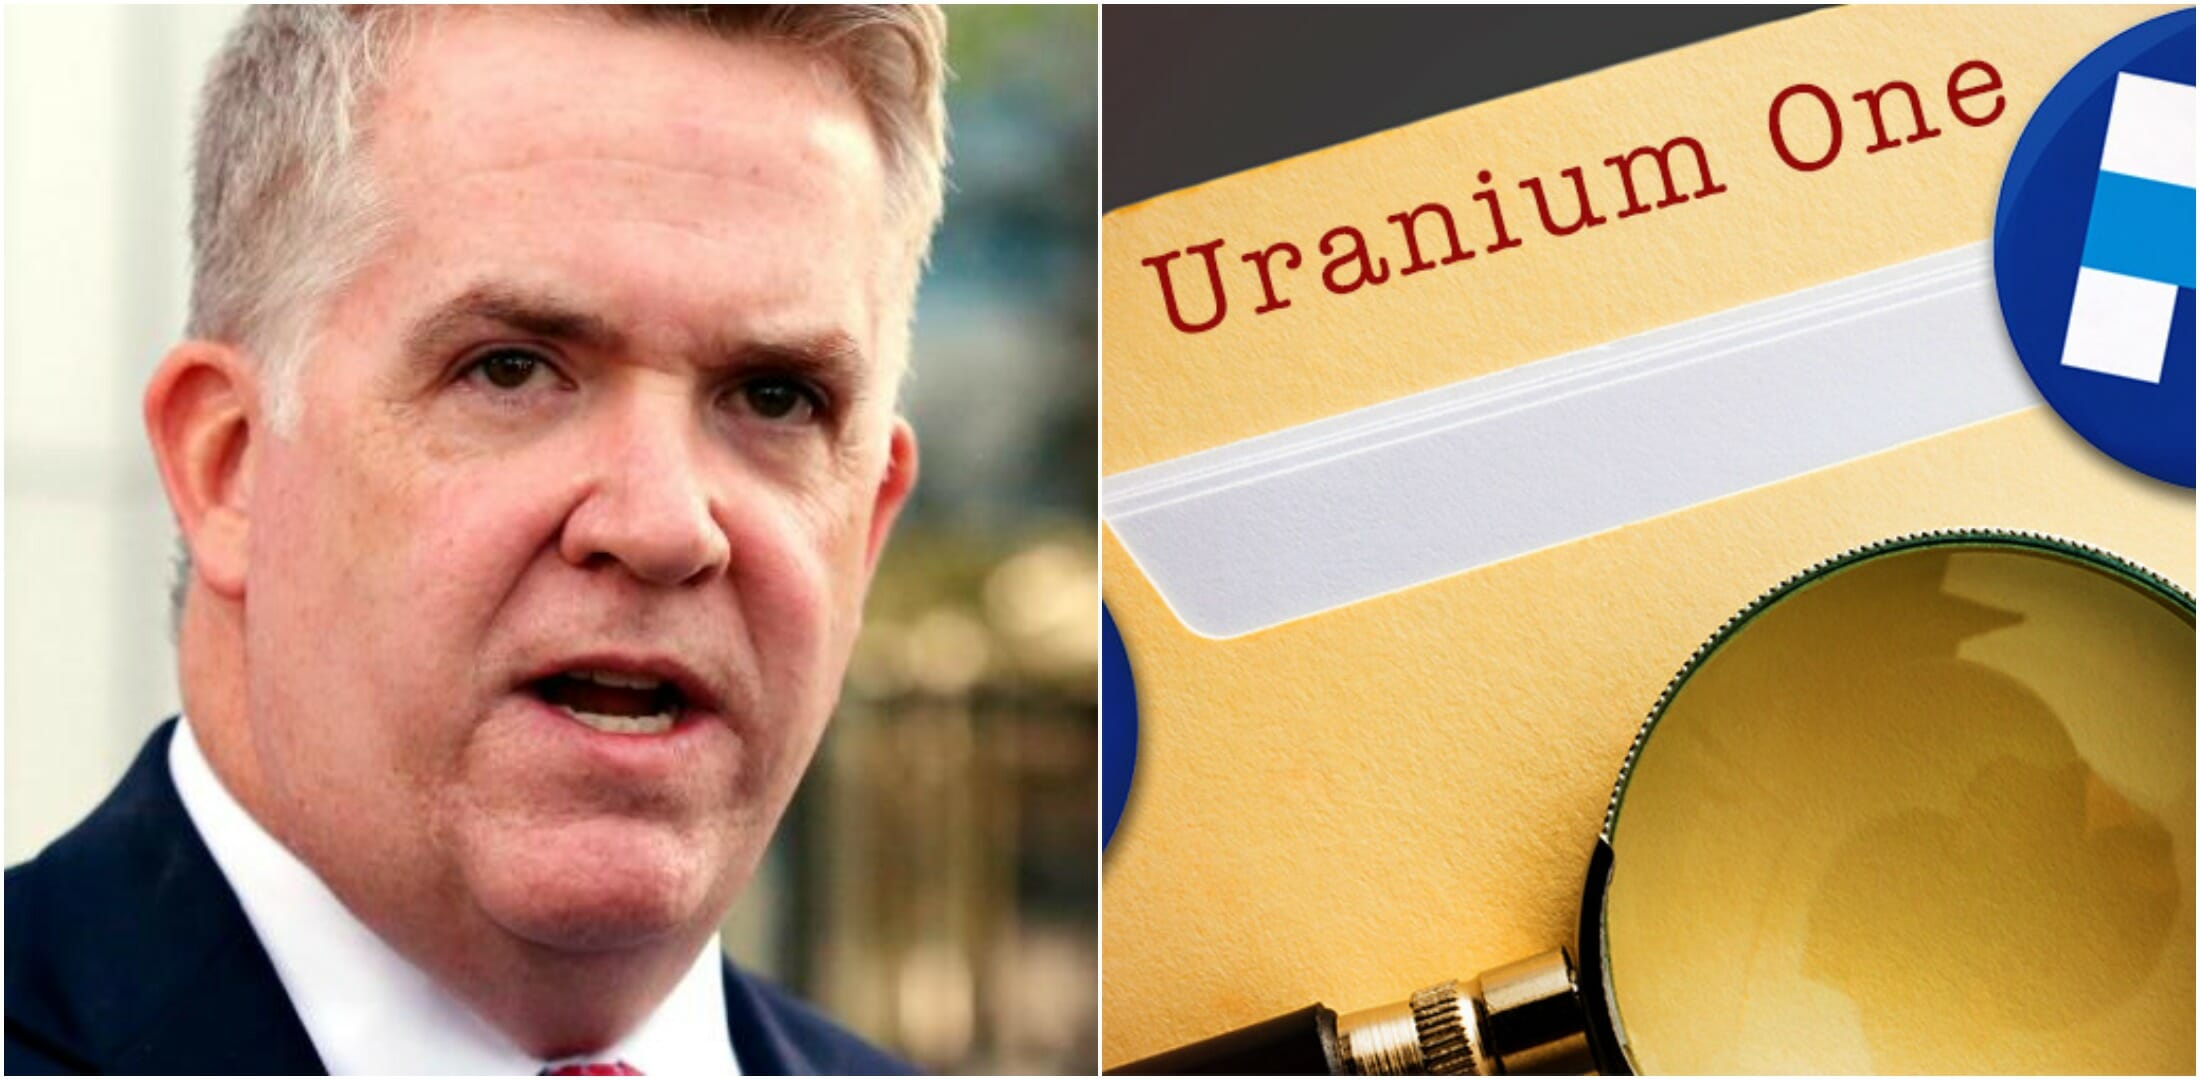 Judicial Watch: Inside the Curious Case of 'Outside D.C.' Federal Prosecutor John Huber and Uranium One